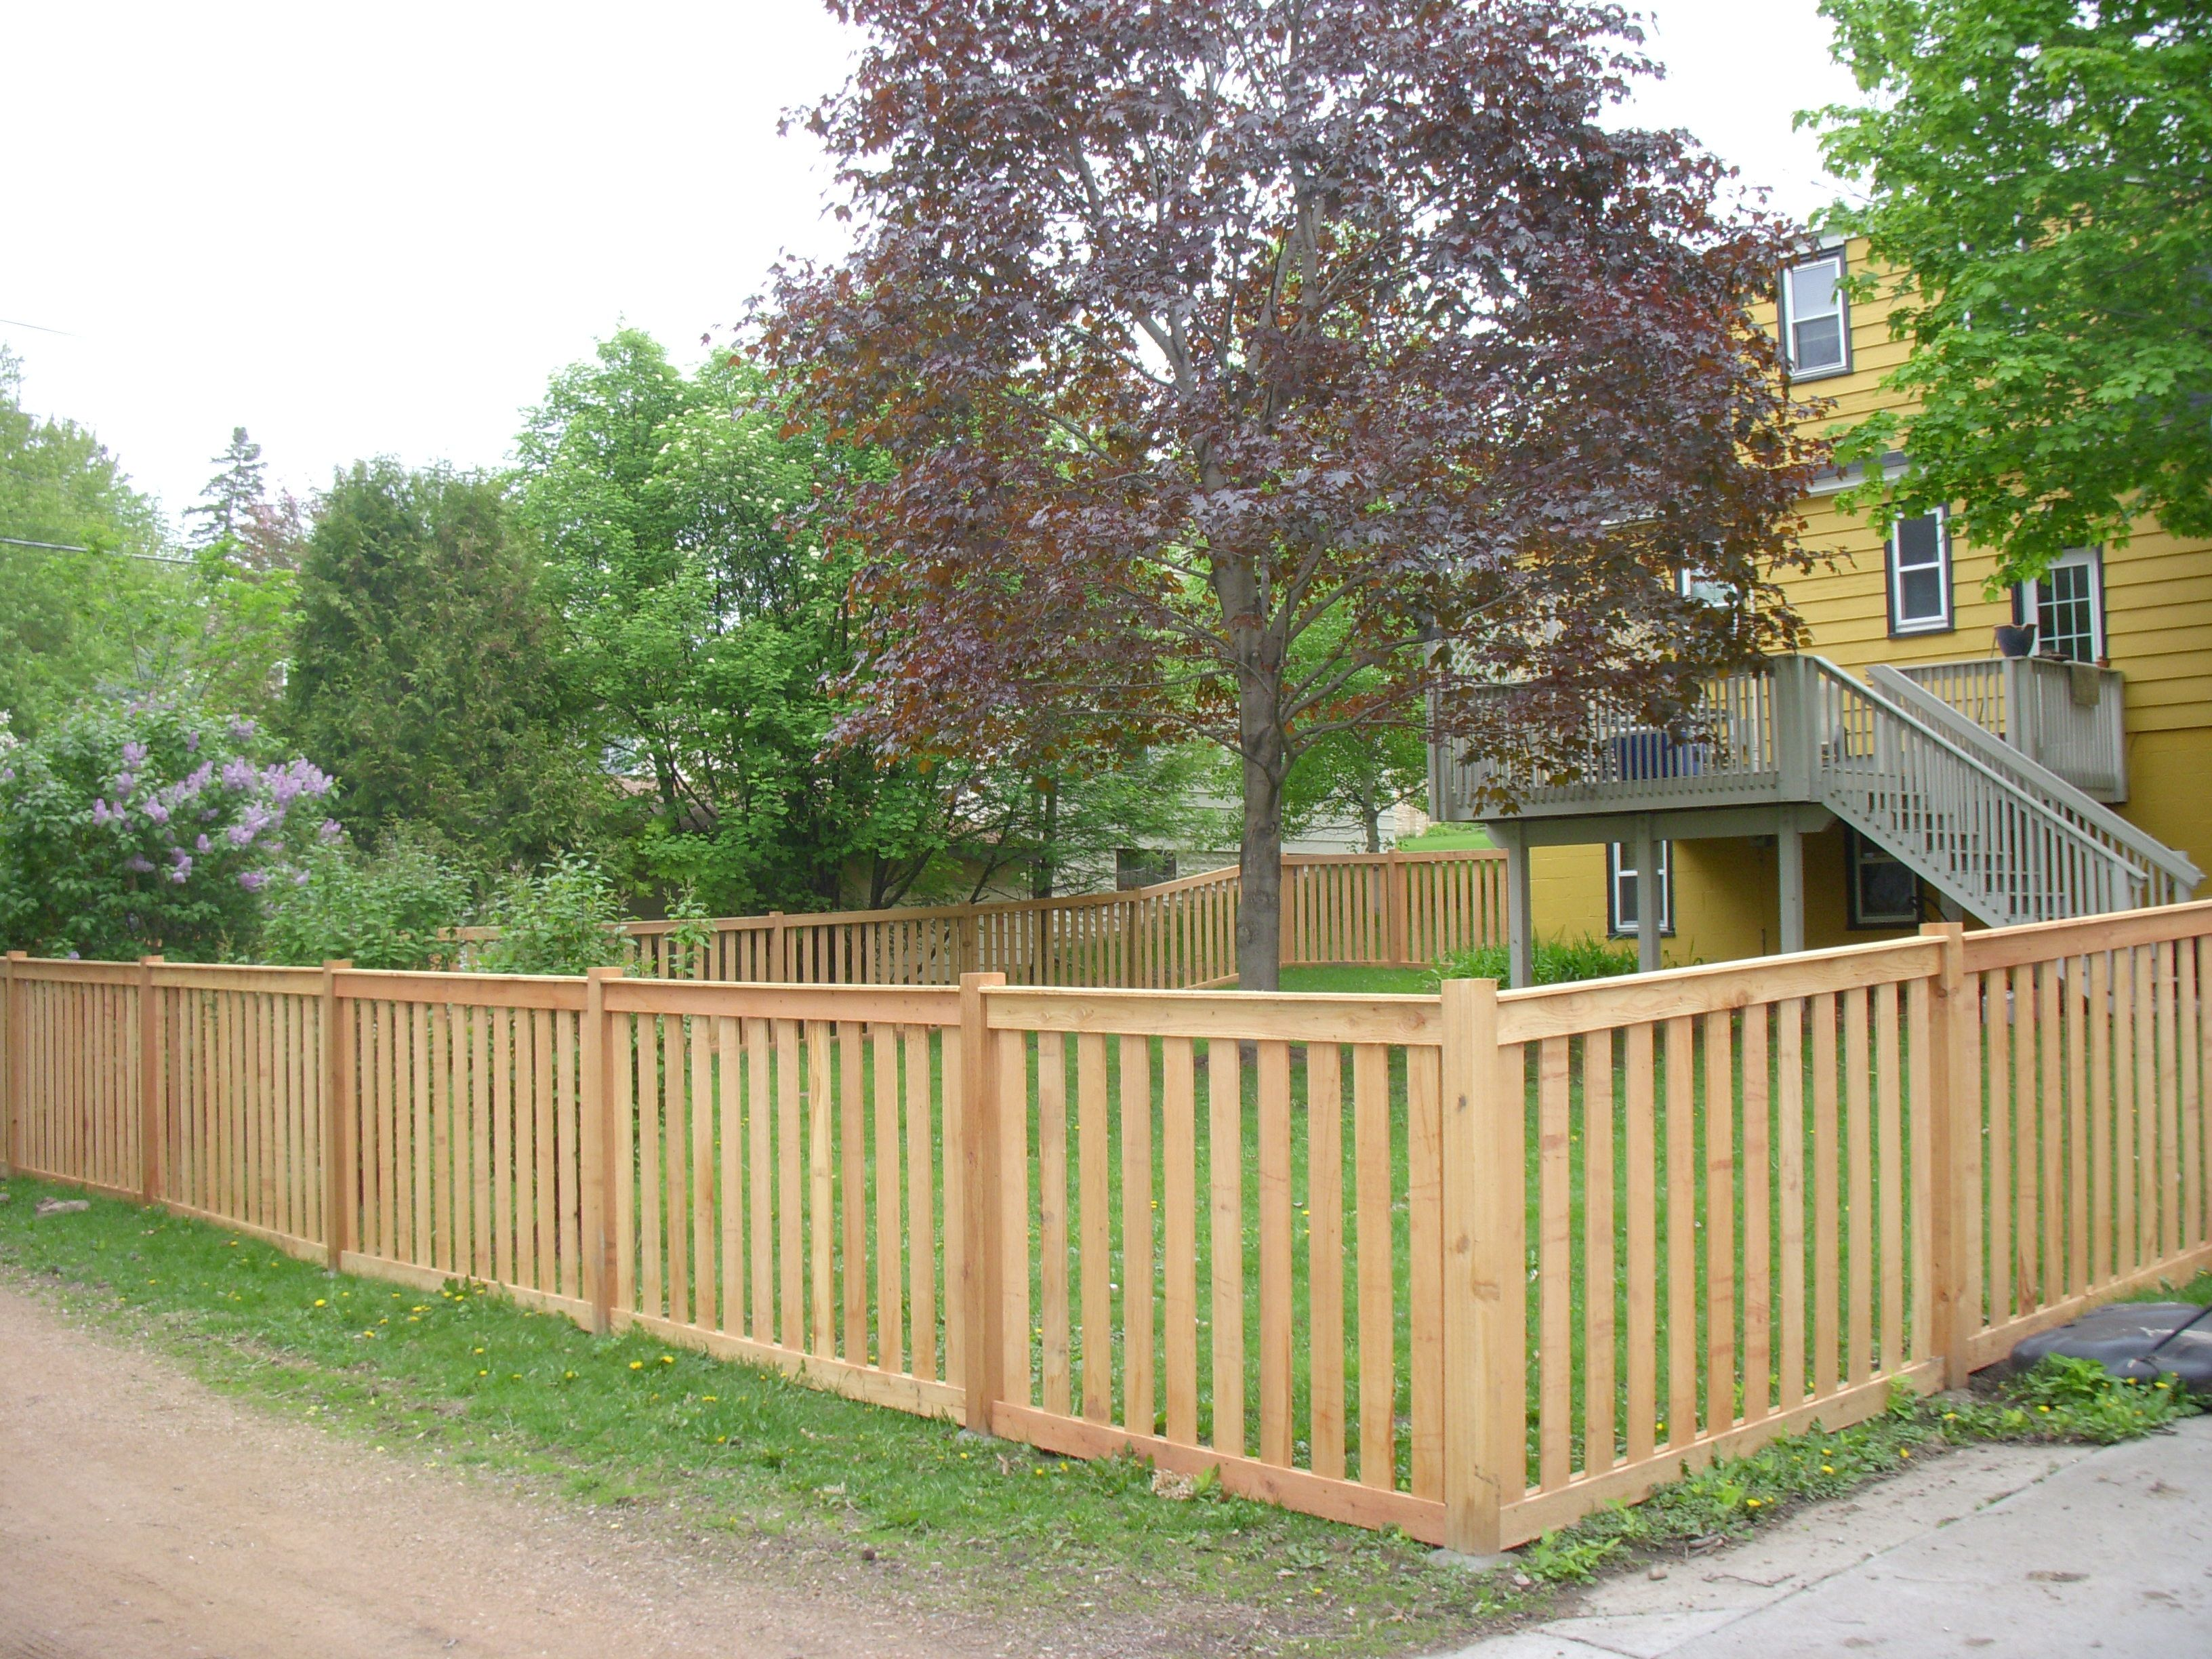 4 Ft Fence Panels Privacy Fence Designs Wood Picket Fence Wood Fence Design